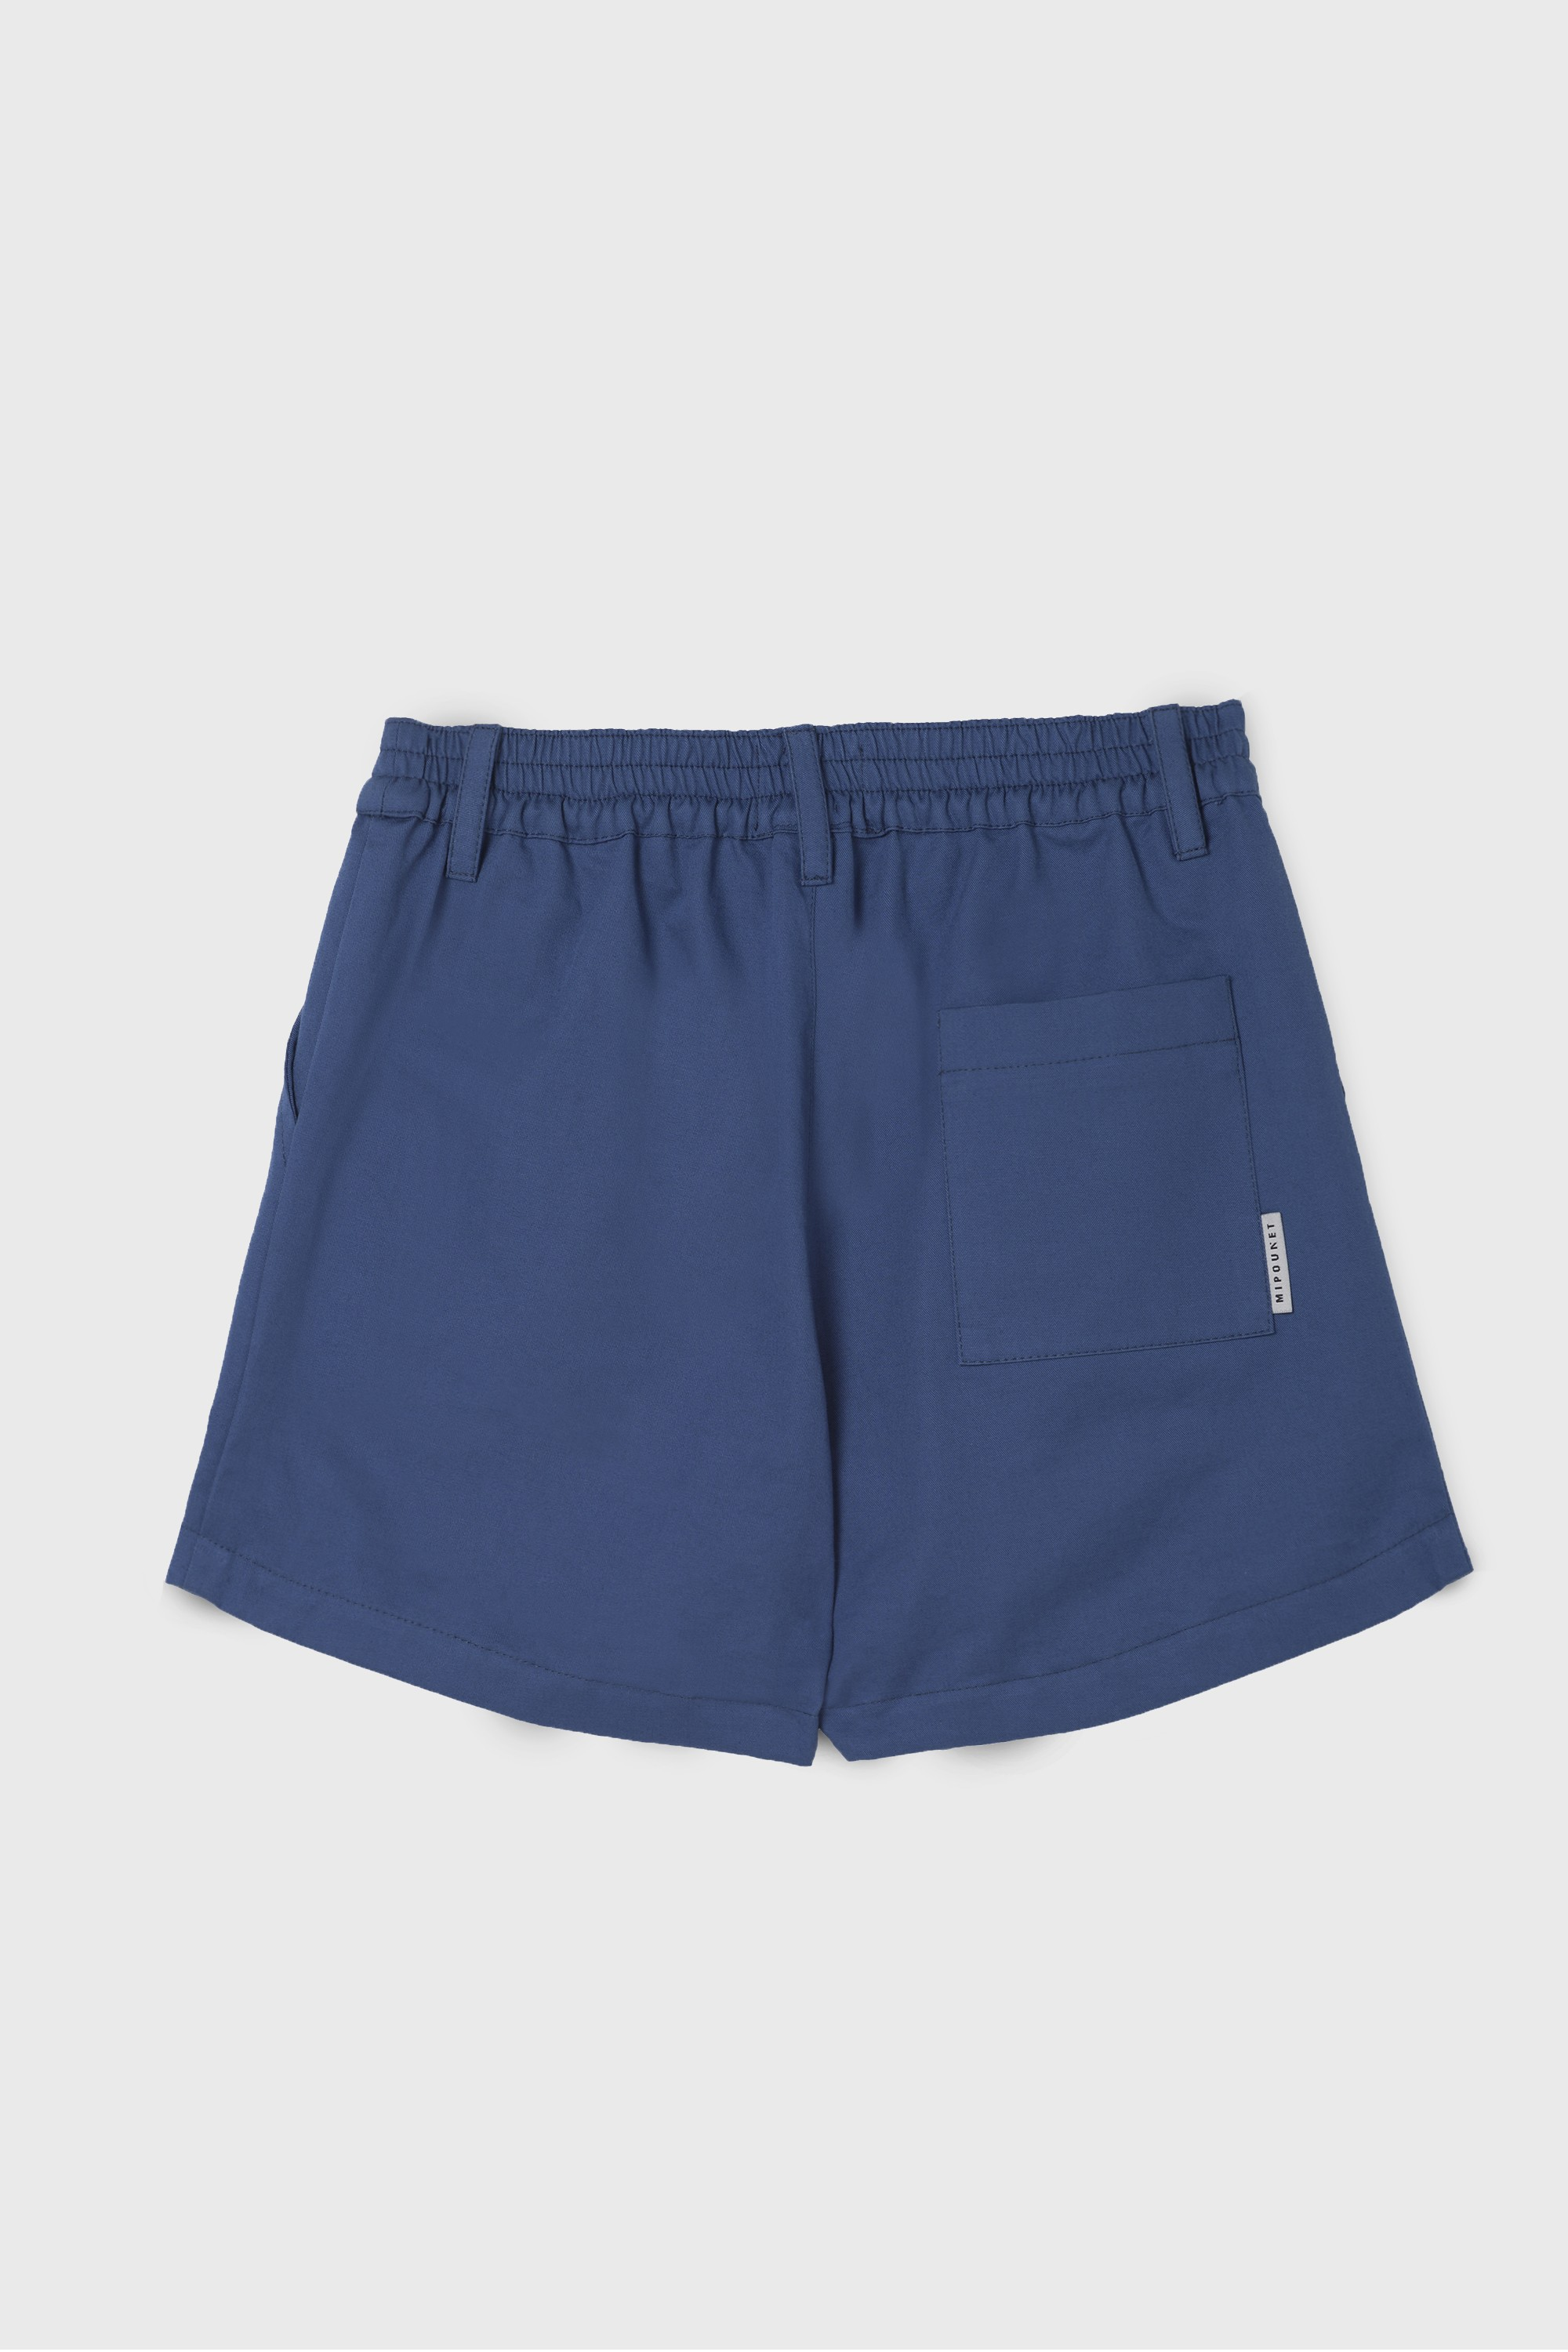 BLUE COTTON GABARDINE PLEATED SHORT